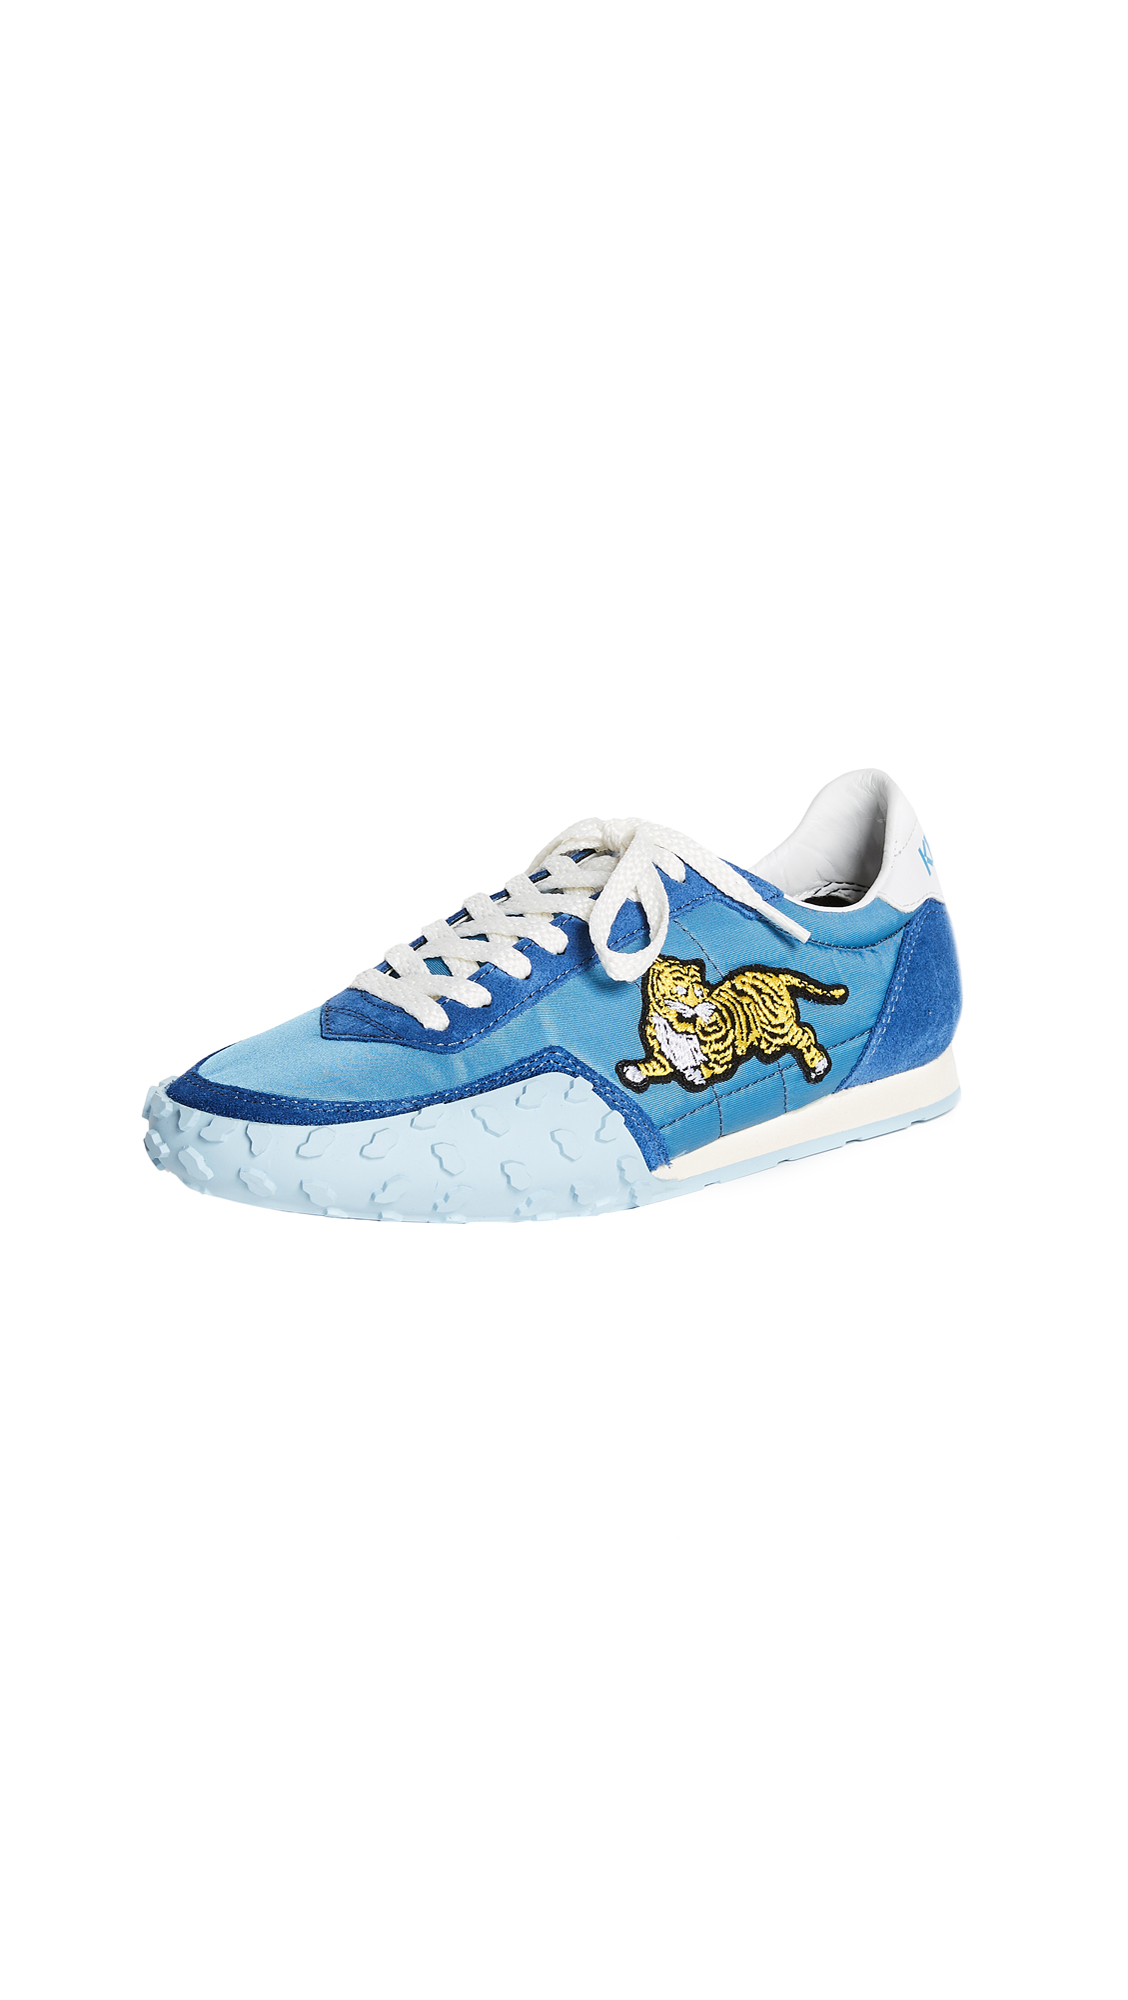 KENZO K-Run Memento Sneakers - France Blue